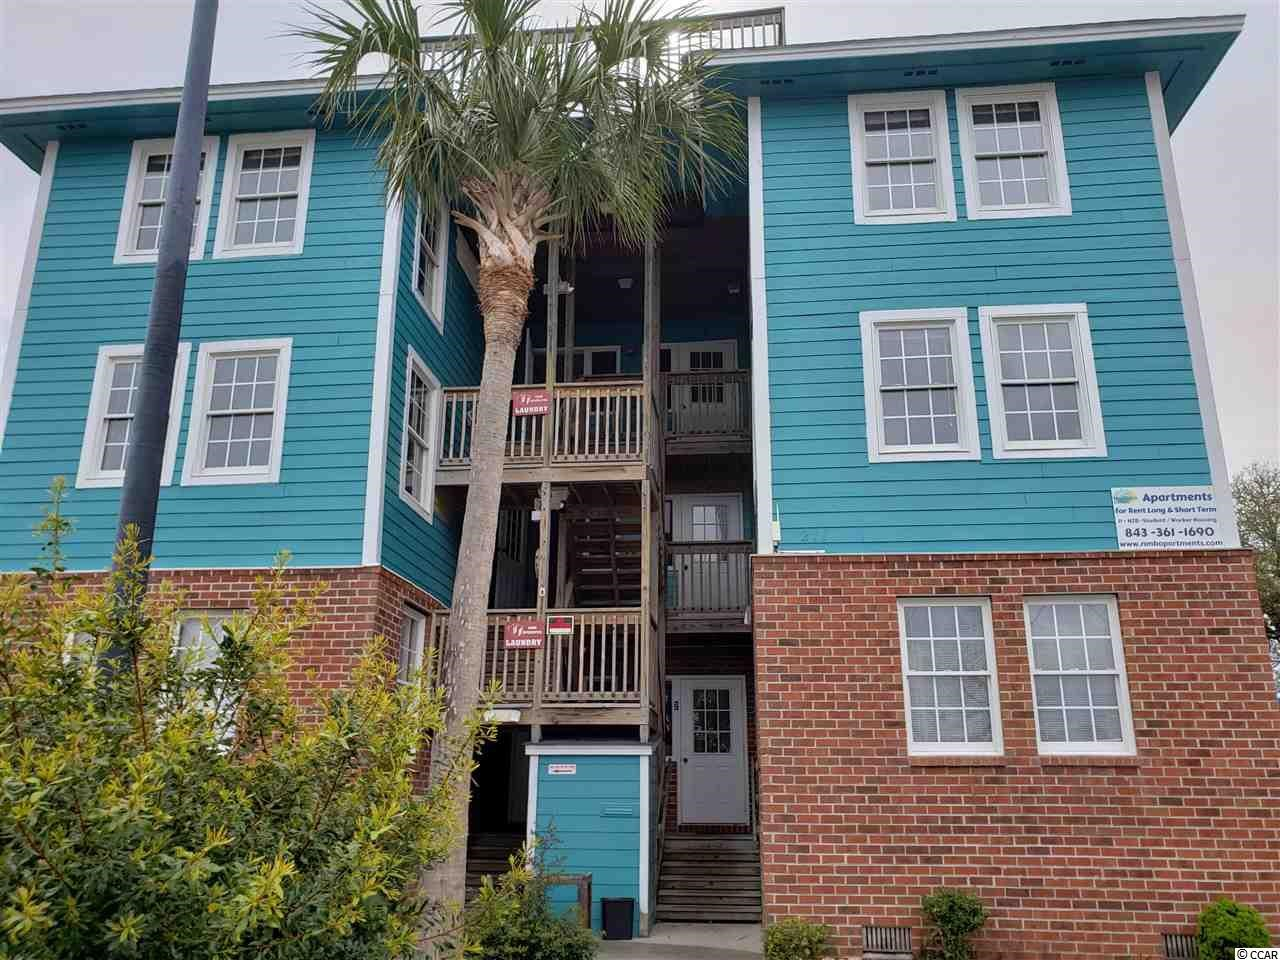 211 1st Ave. S, North Myrtle Beach